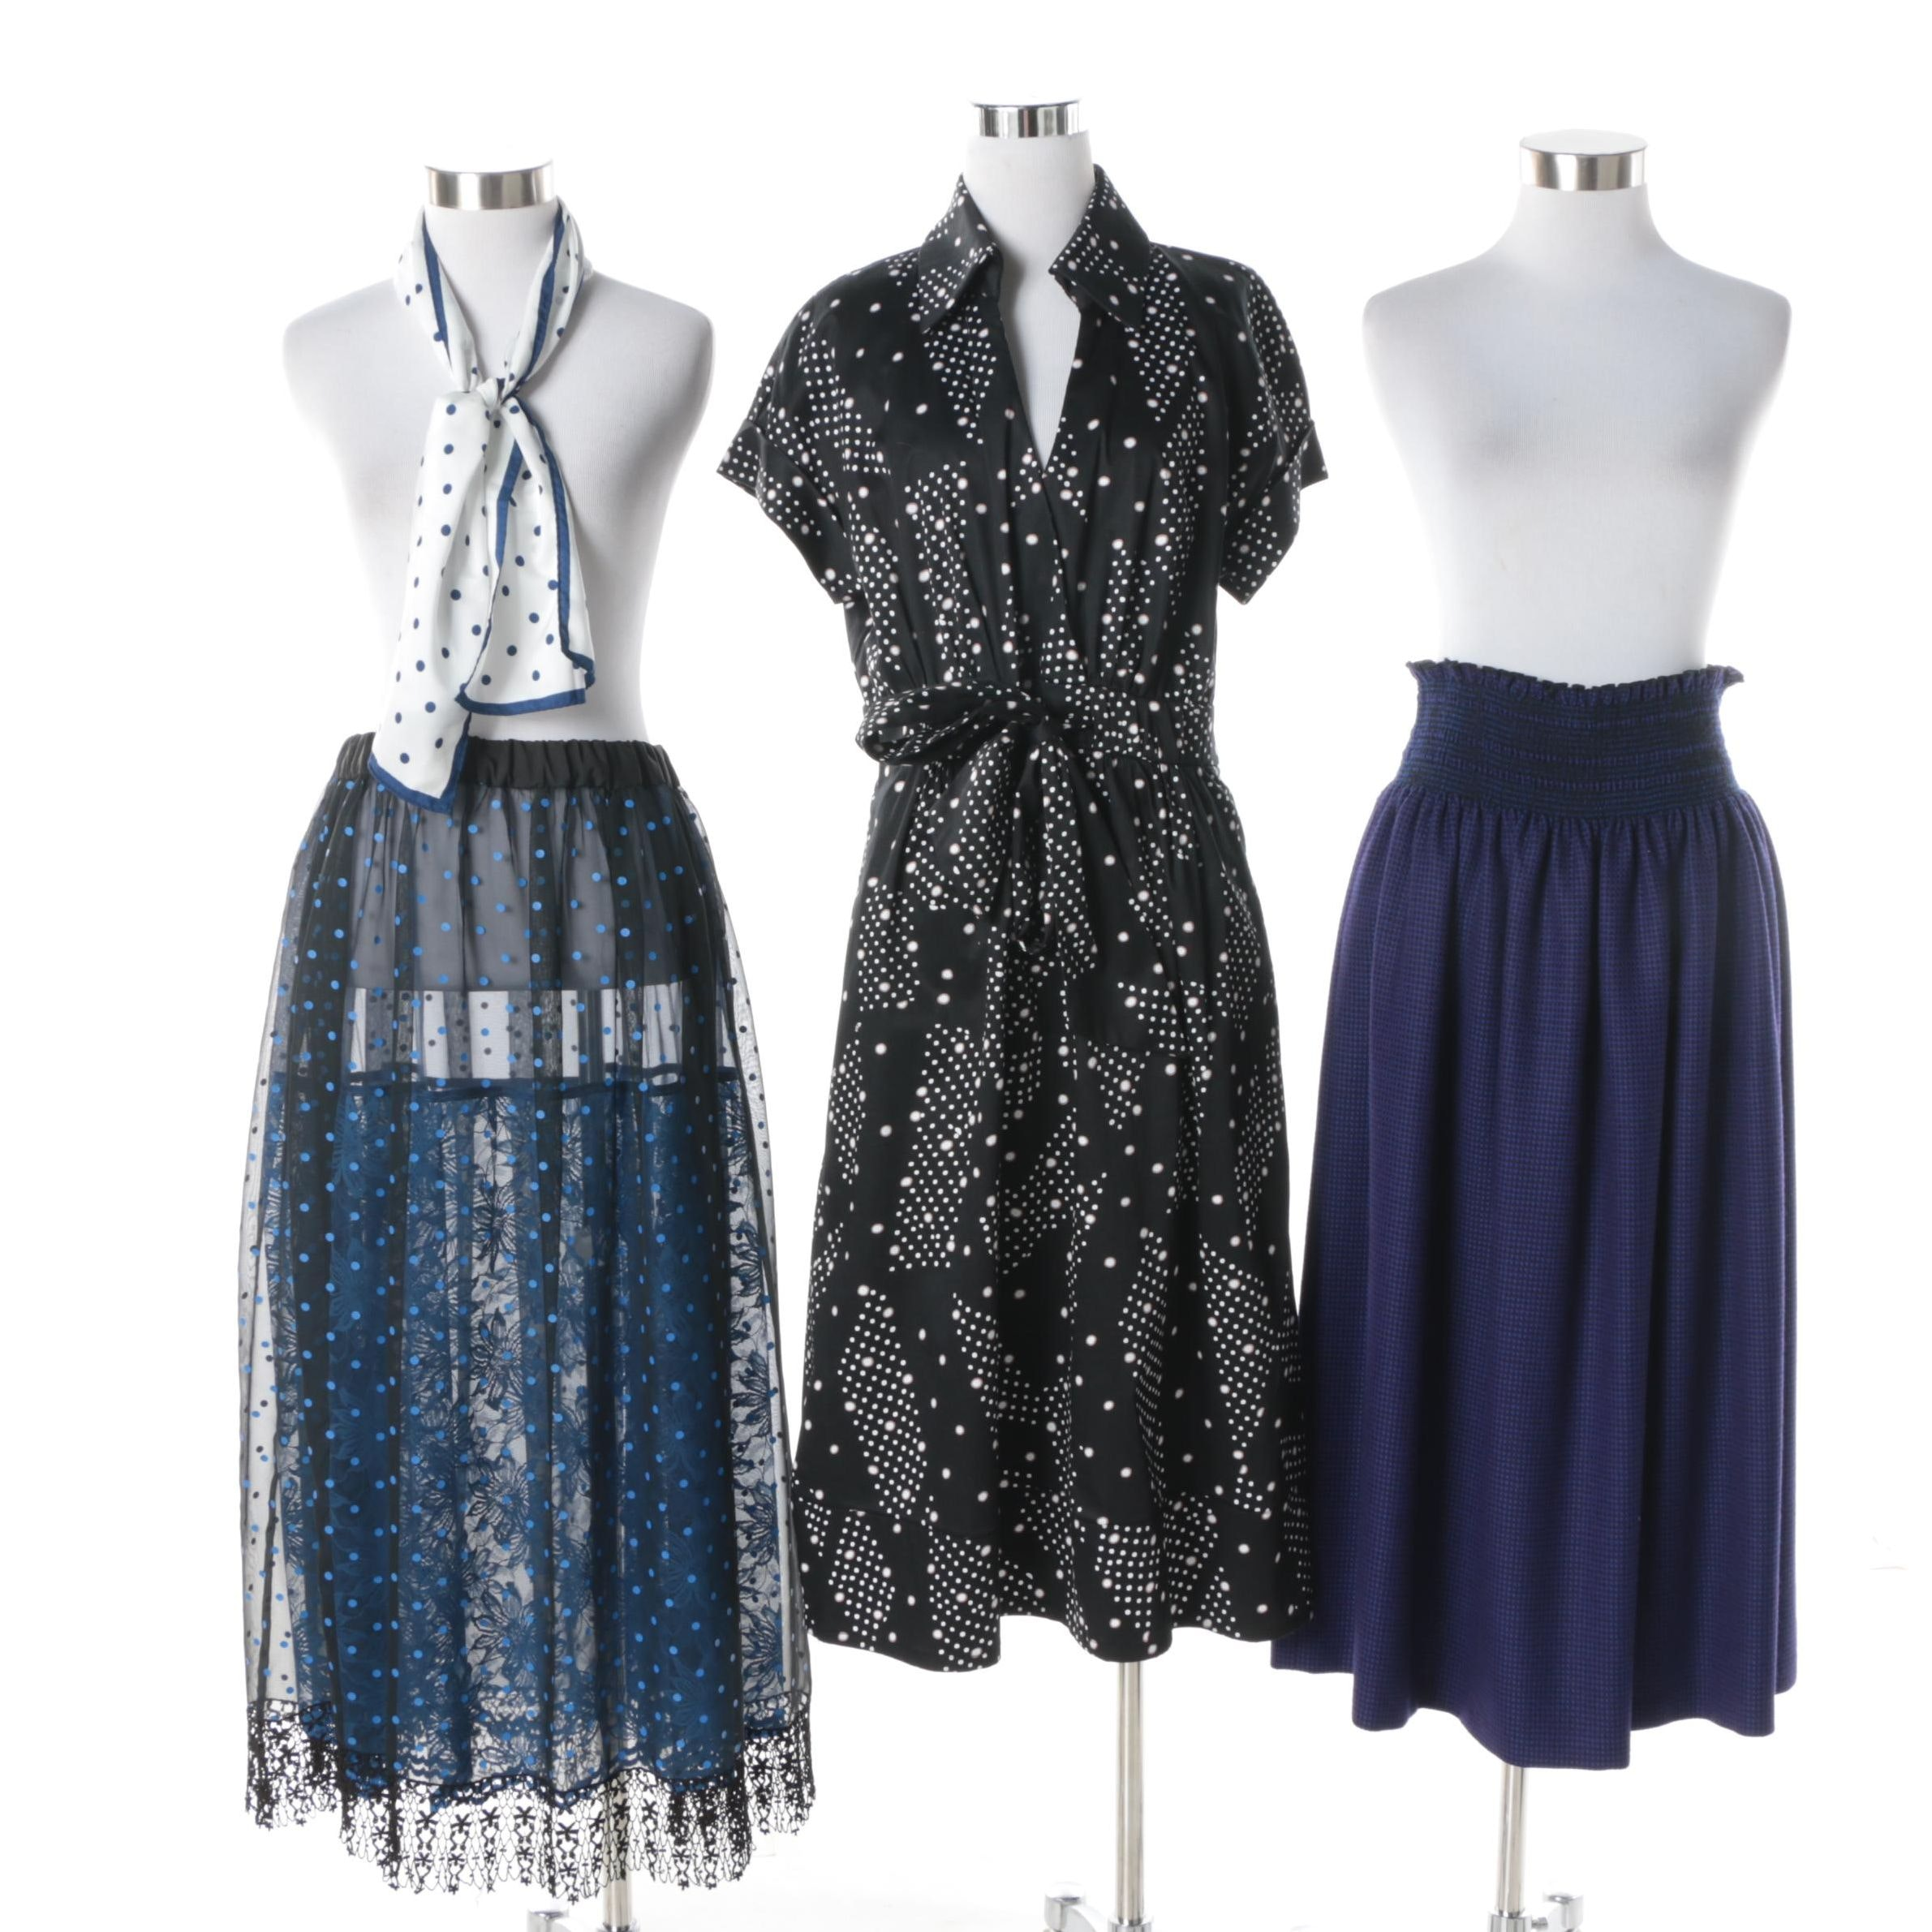 Donna Ricco Dress with Other Skirts and Scarf